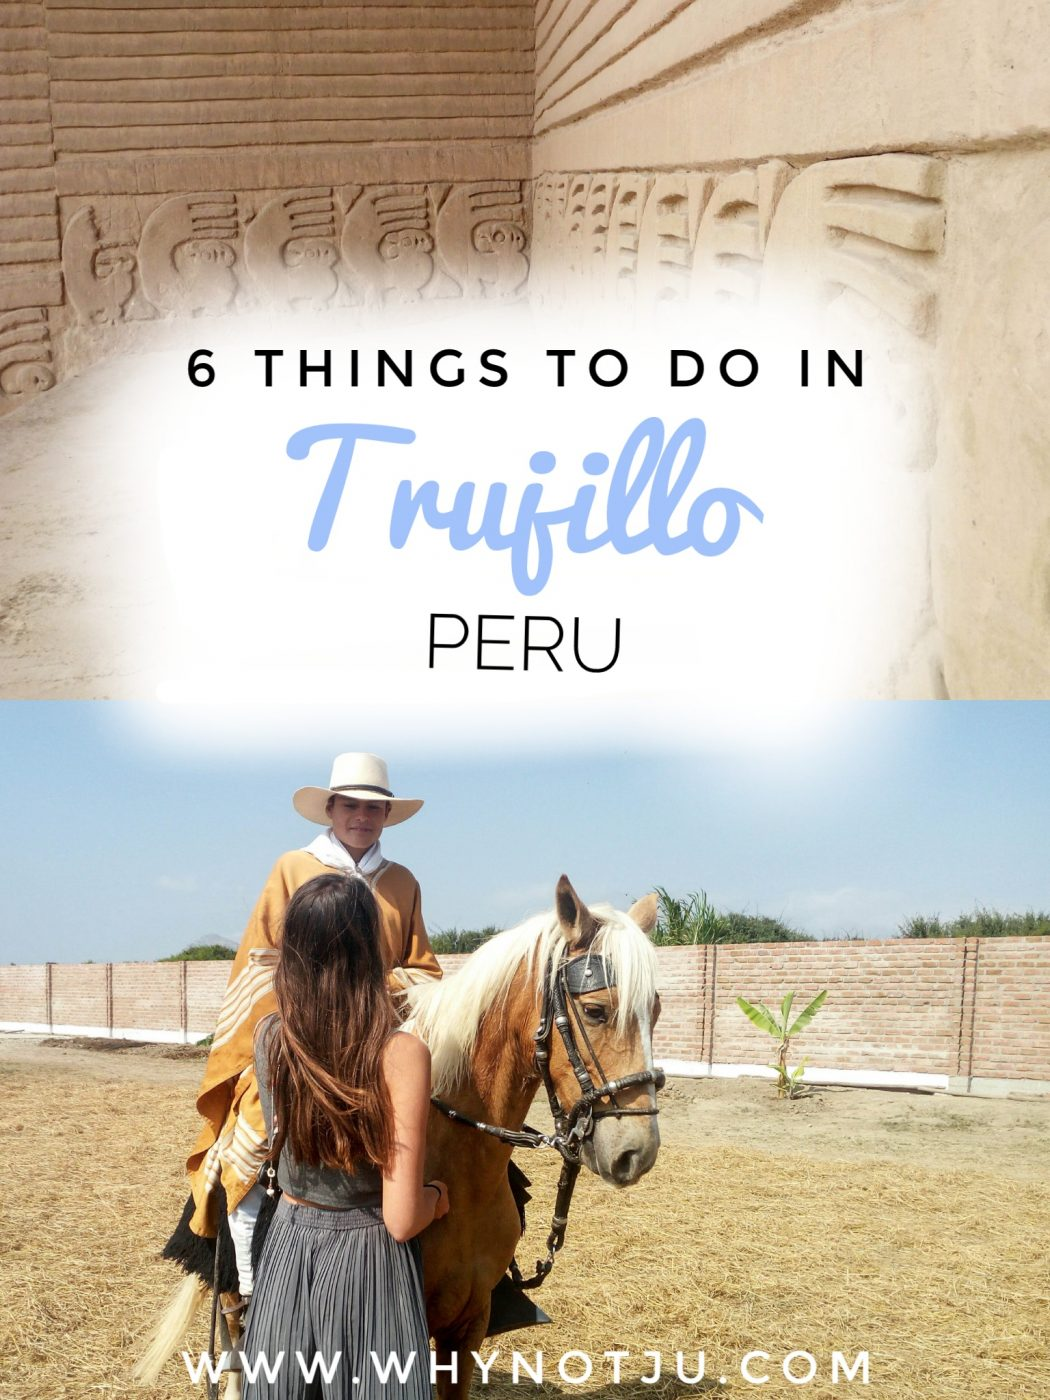 Trujillo in the north of Peru, has much to offer. Such as beach, surf and pre-inca ruins close by. Here are 6 things to do in Trujillo. #peru #southamerica #travel #guide #adventure #backpacking